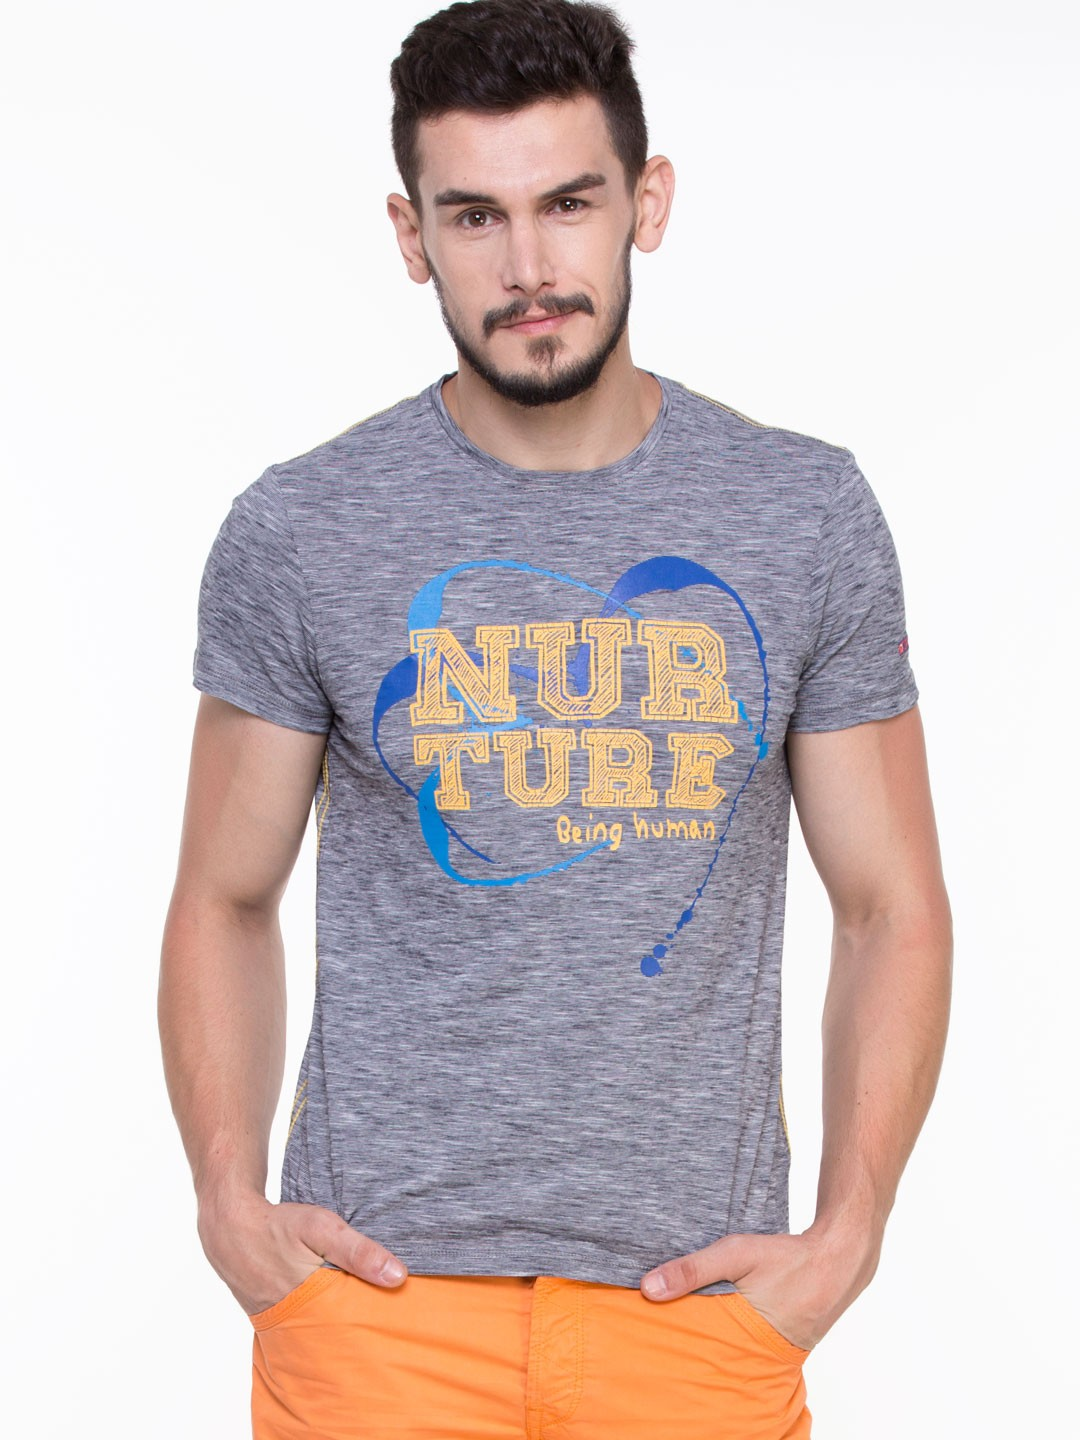 Buy being human nurture printed tee shirt as seen on for Being human t shirts buy online india